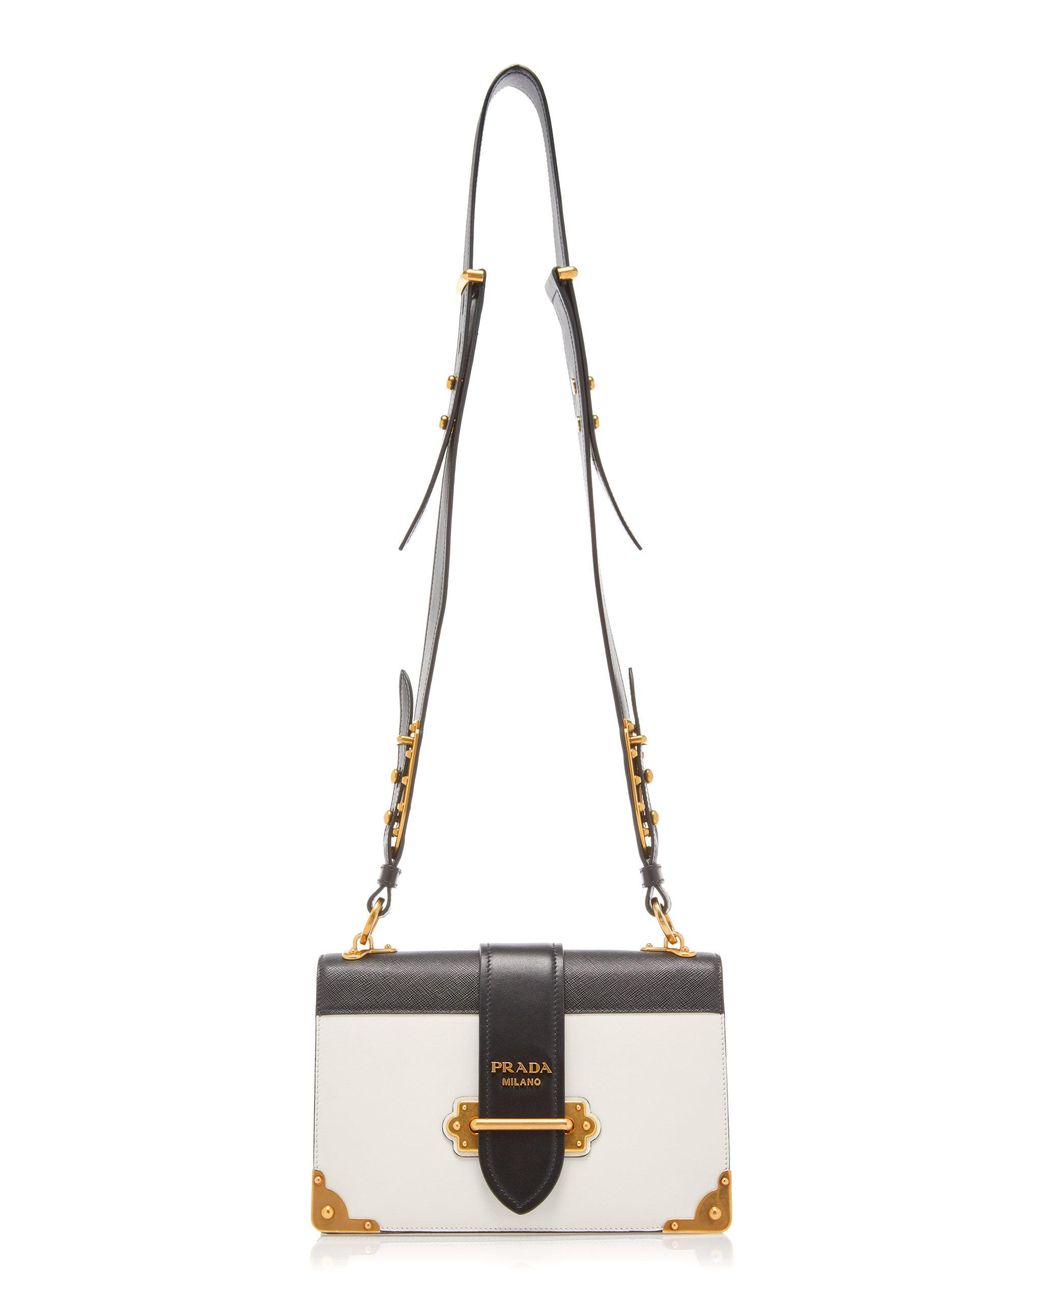 238e25540cde Lyst - Prada Cahier Large Two-tone Leather Shoulder Bag in Black